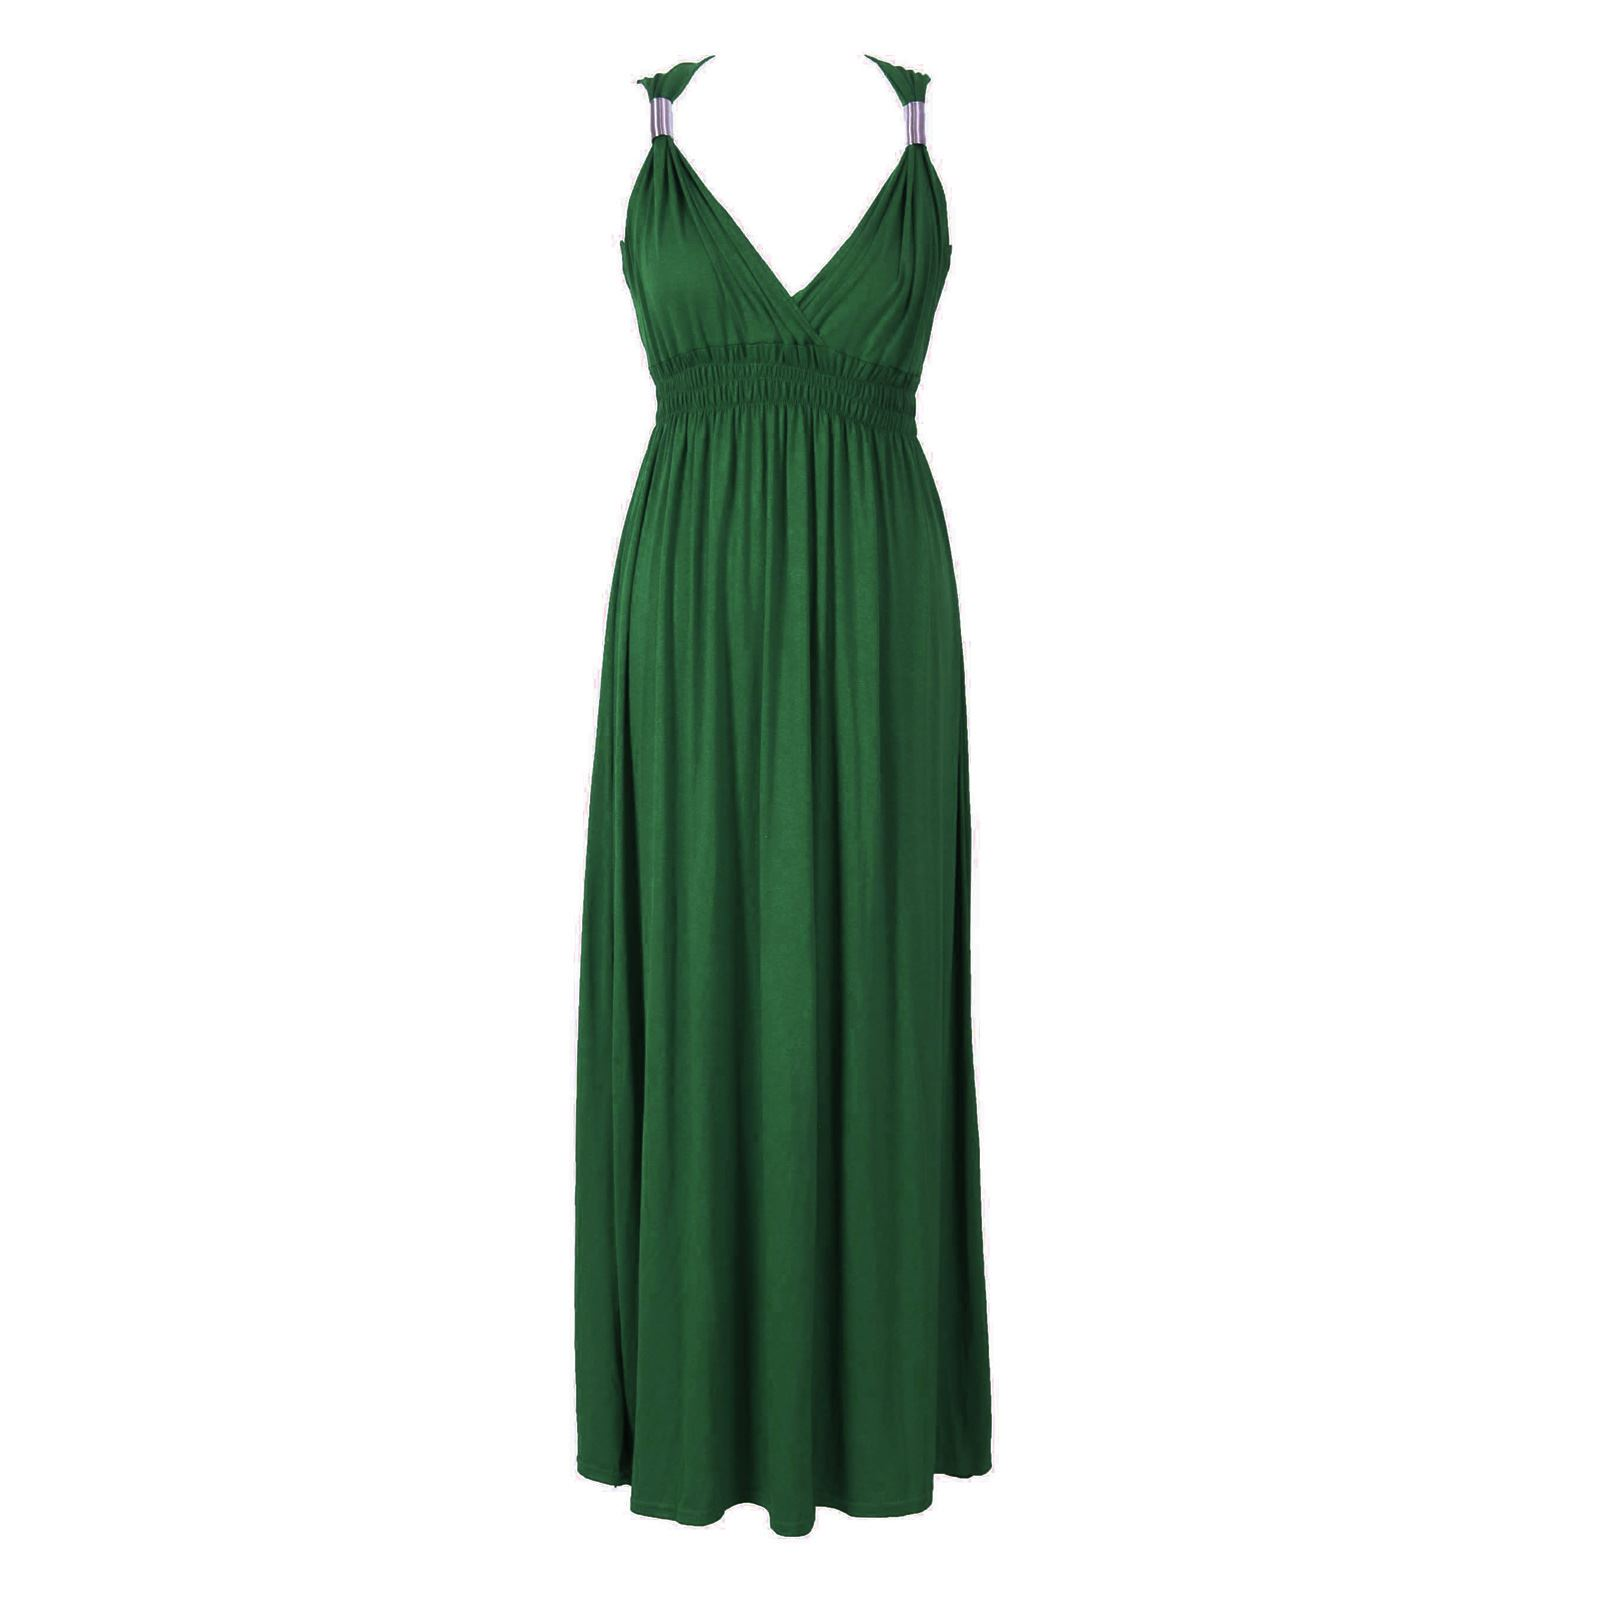 NEW-LADIES-WOMENS-SLEEVELESS-LONG-JERSEY-STRETCH-COIL-SPRING-MAXI-DRESS-SIZE-814